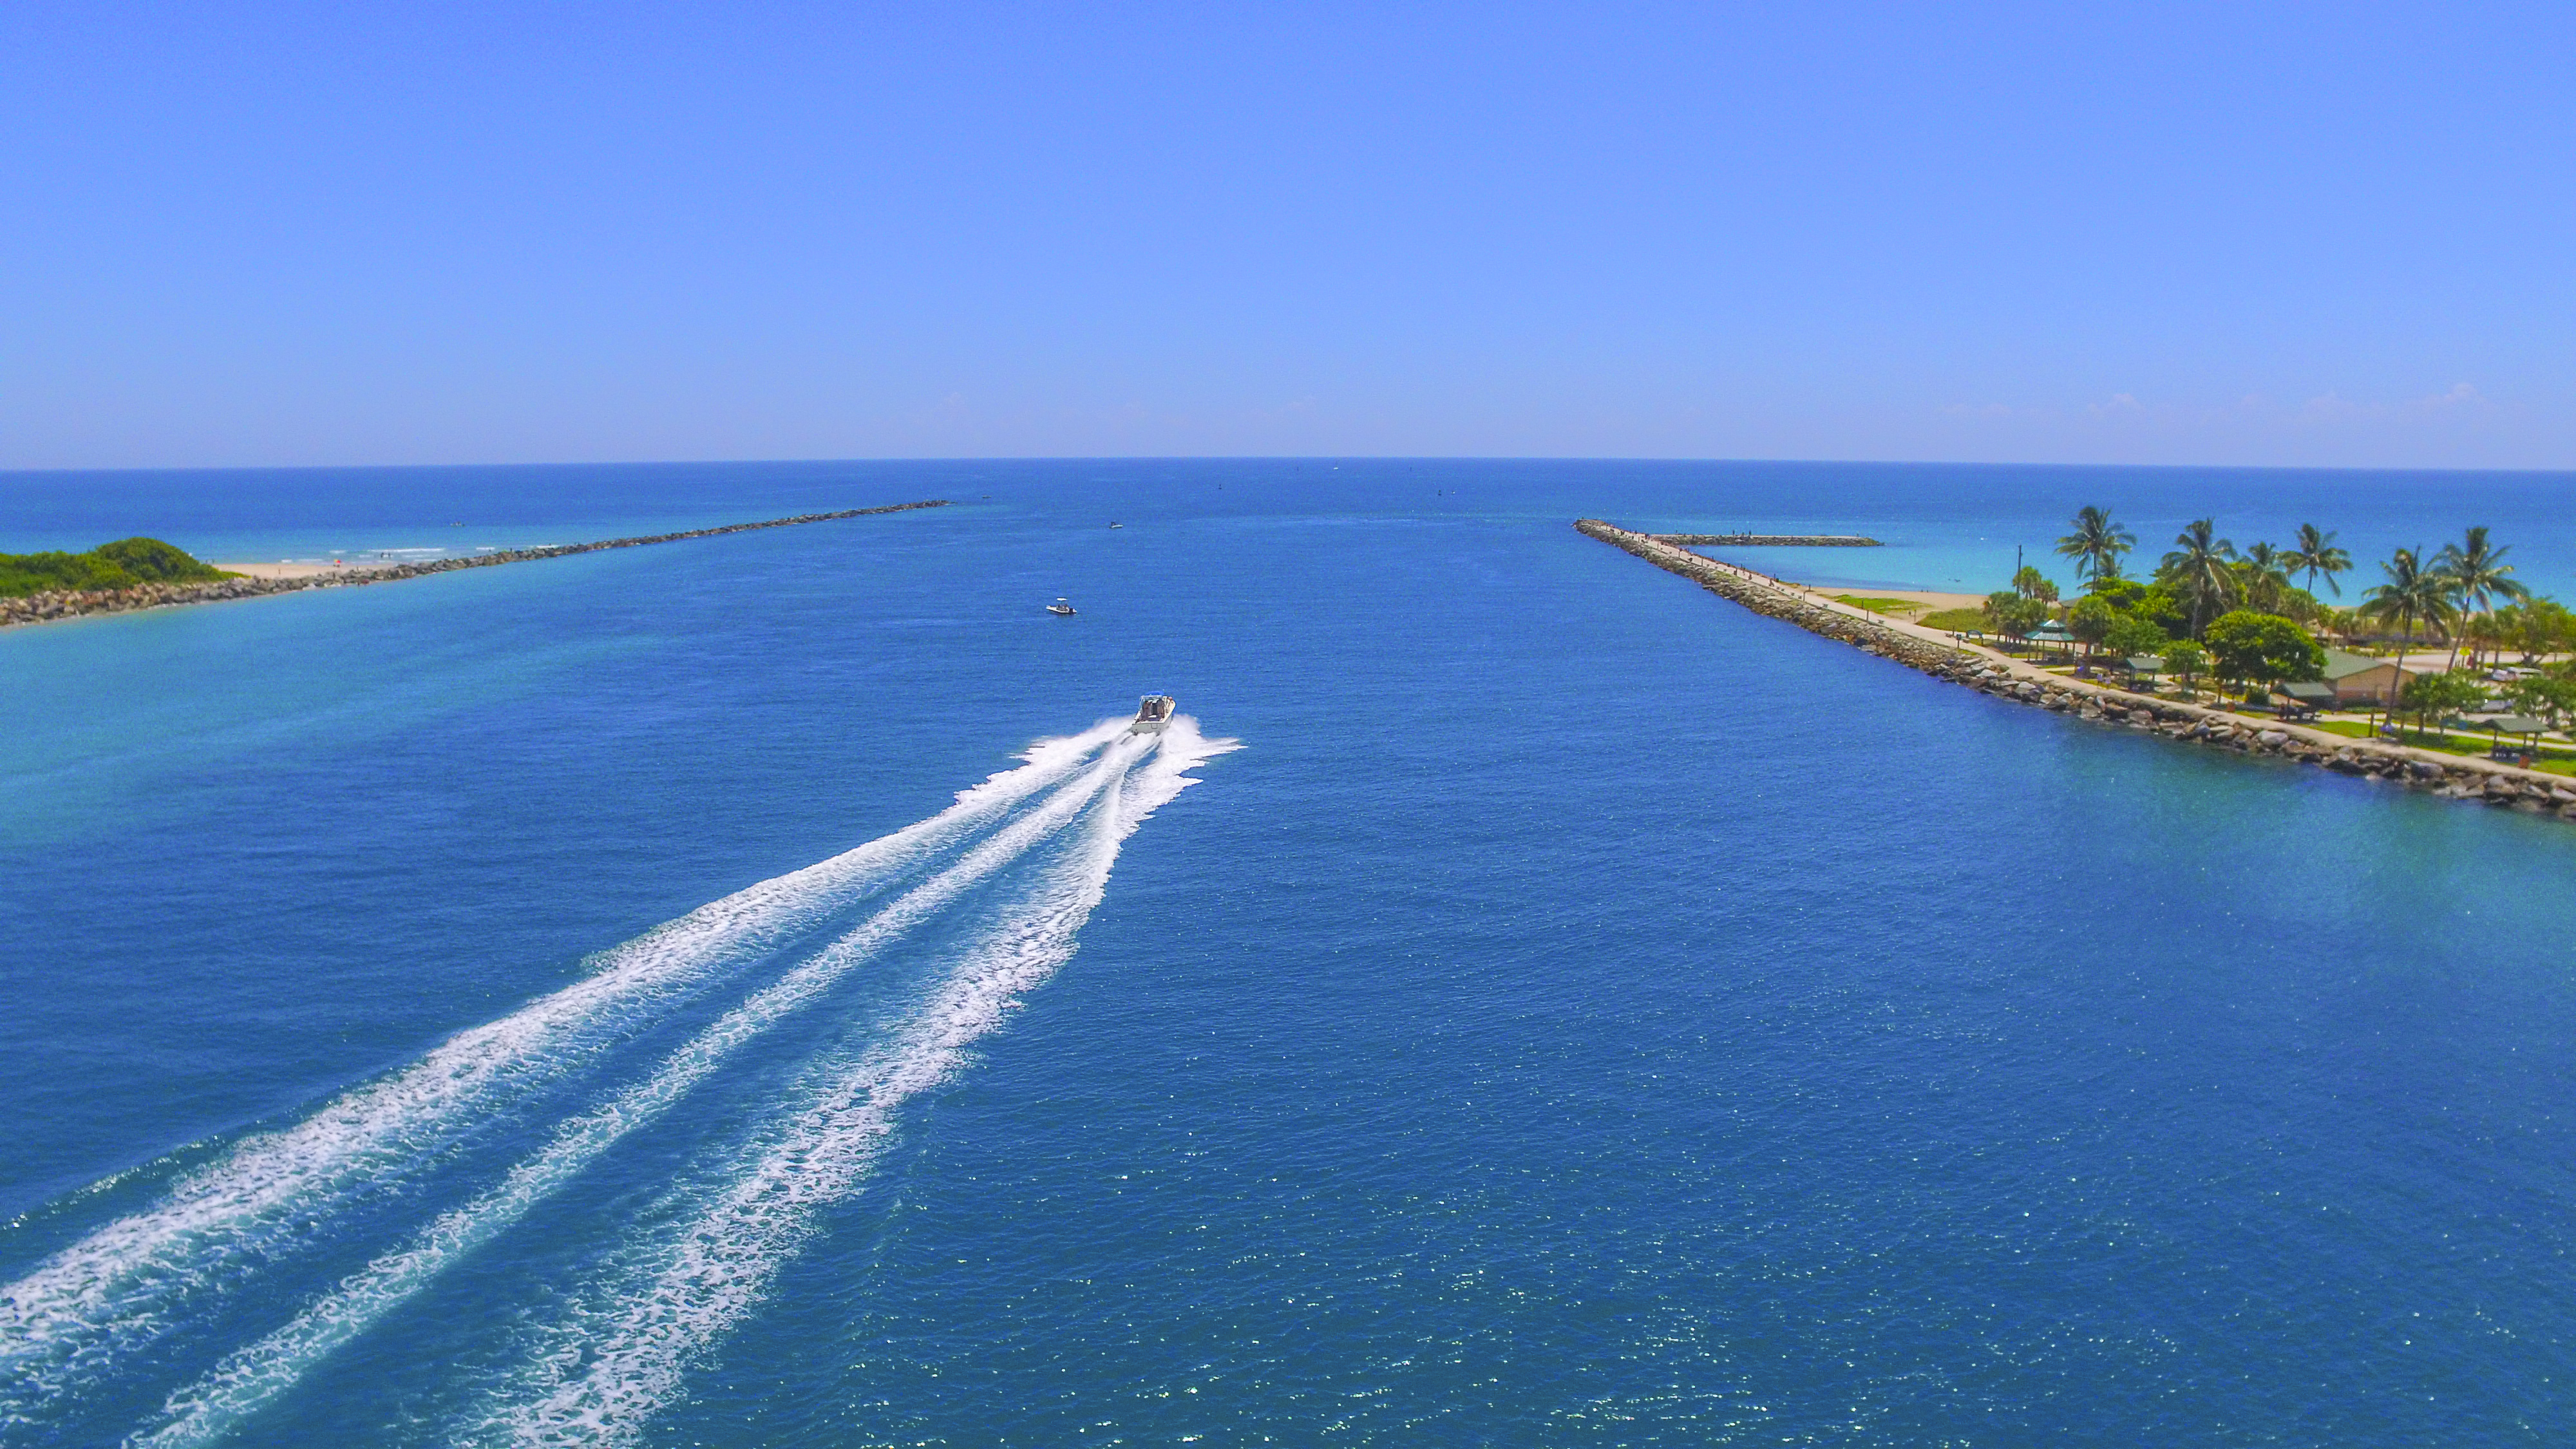 Blue waters on the Fort Pierce Inlet